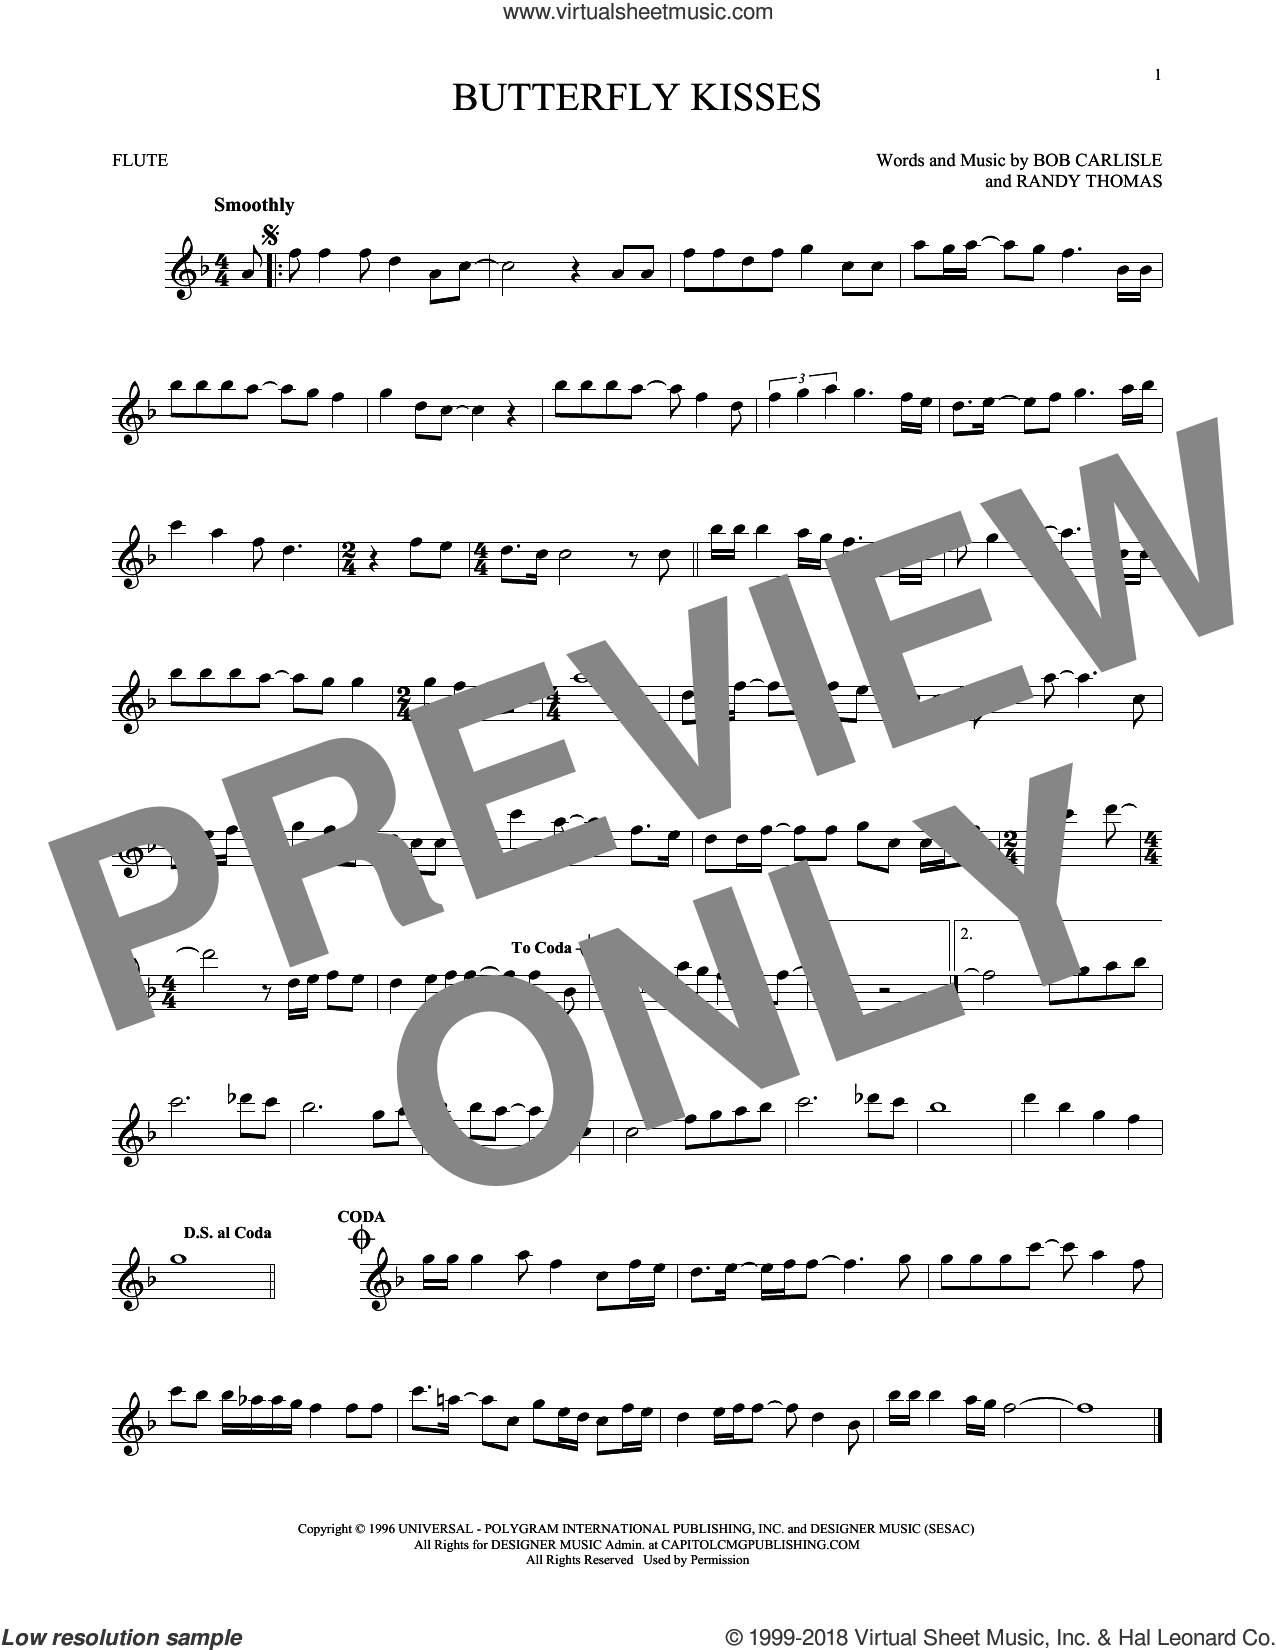 Butterfly Kisses sheet music for flute solo by Bob Carlisle, Jeff Carson and Randy Thomas, wedding score, intermediate skill level